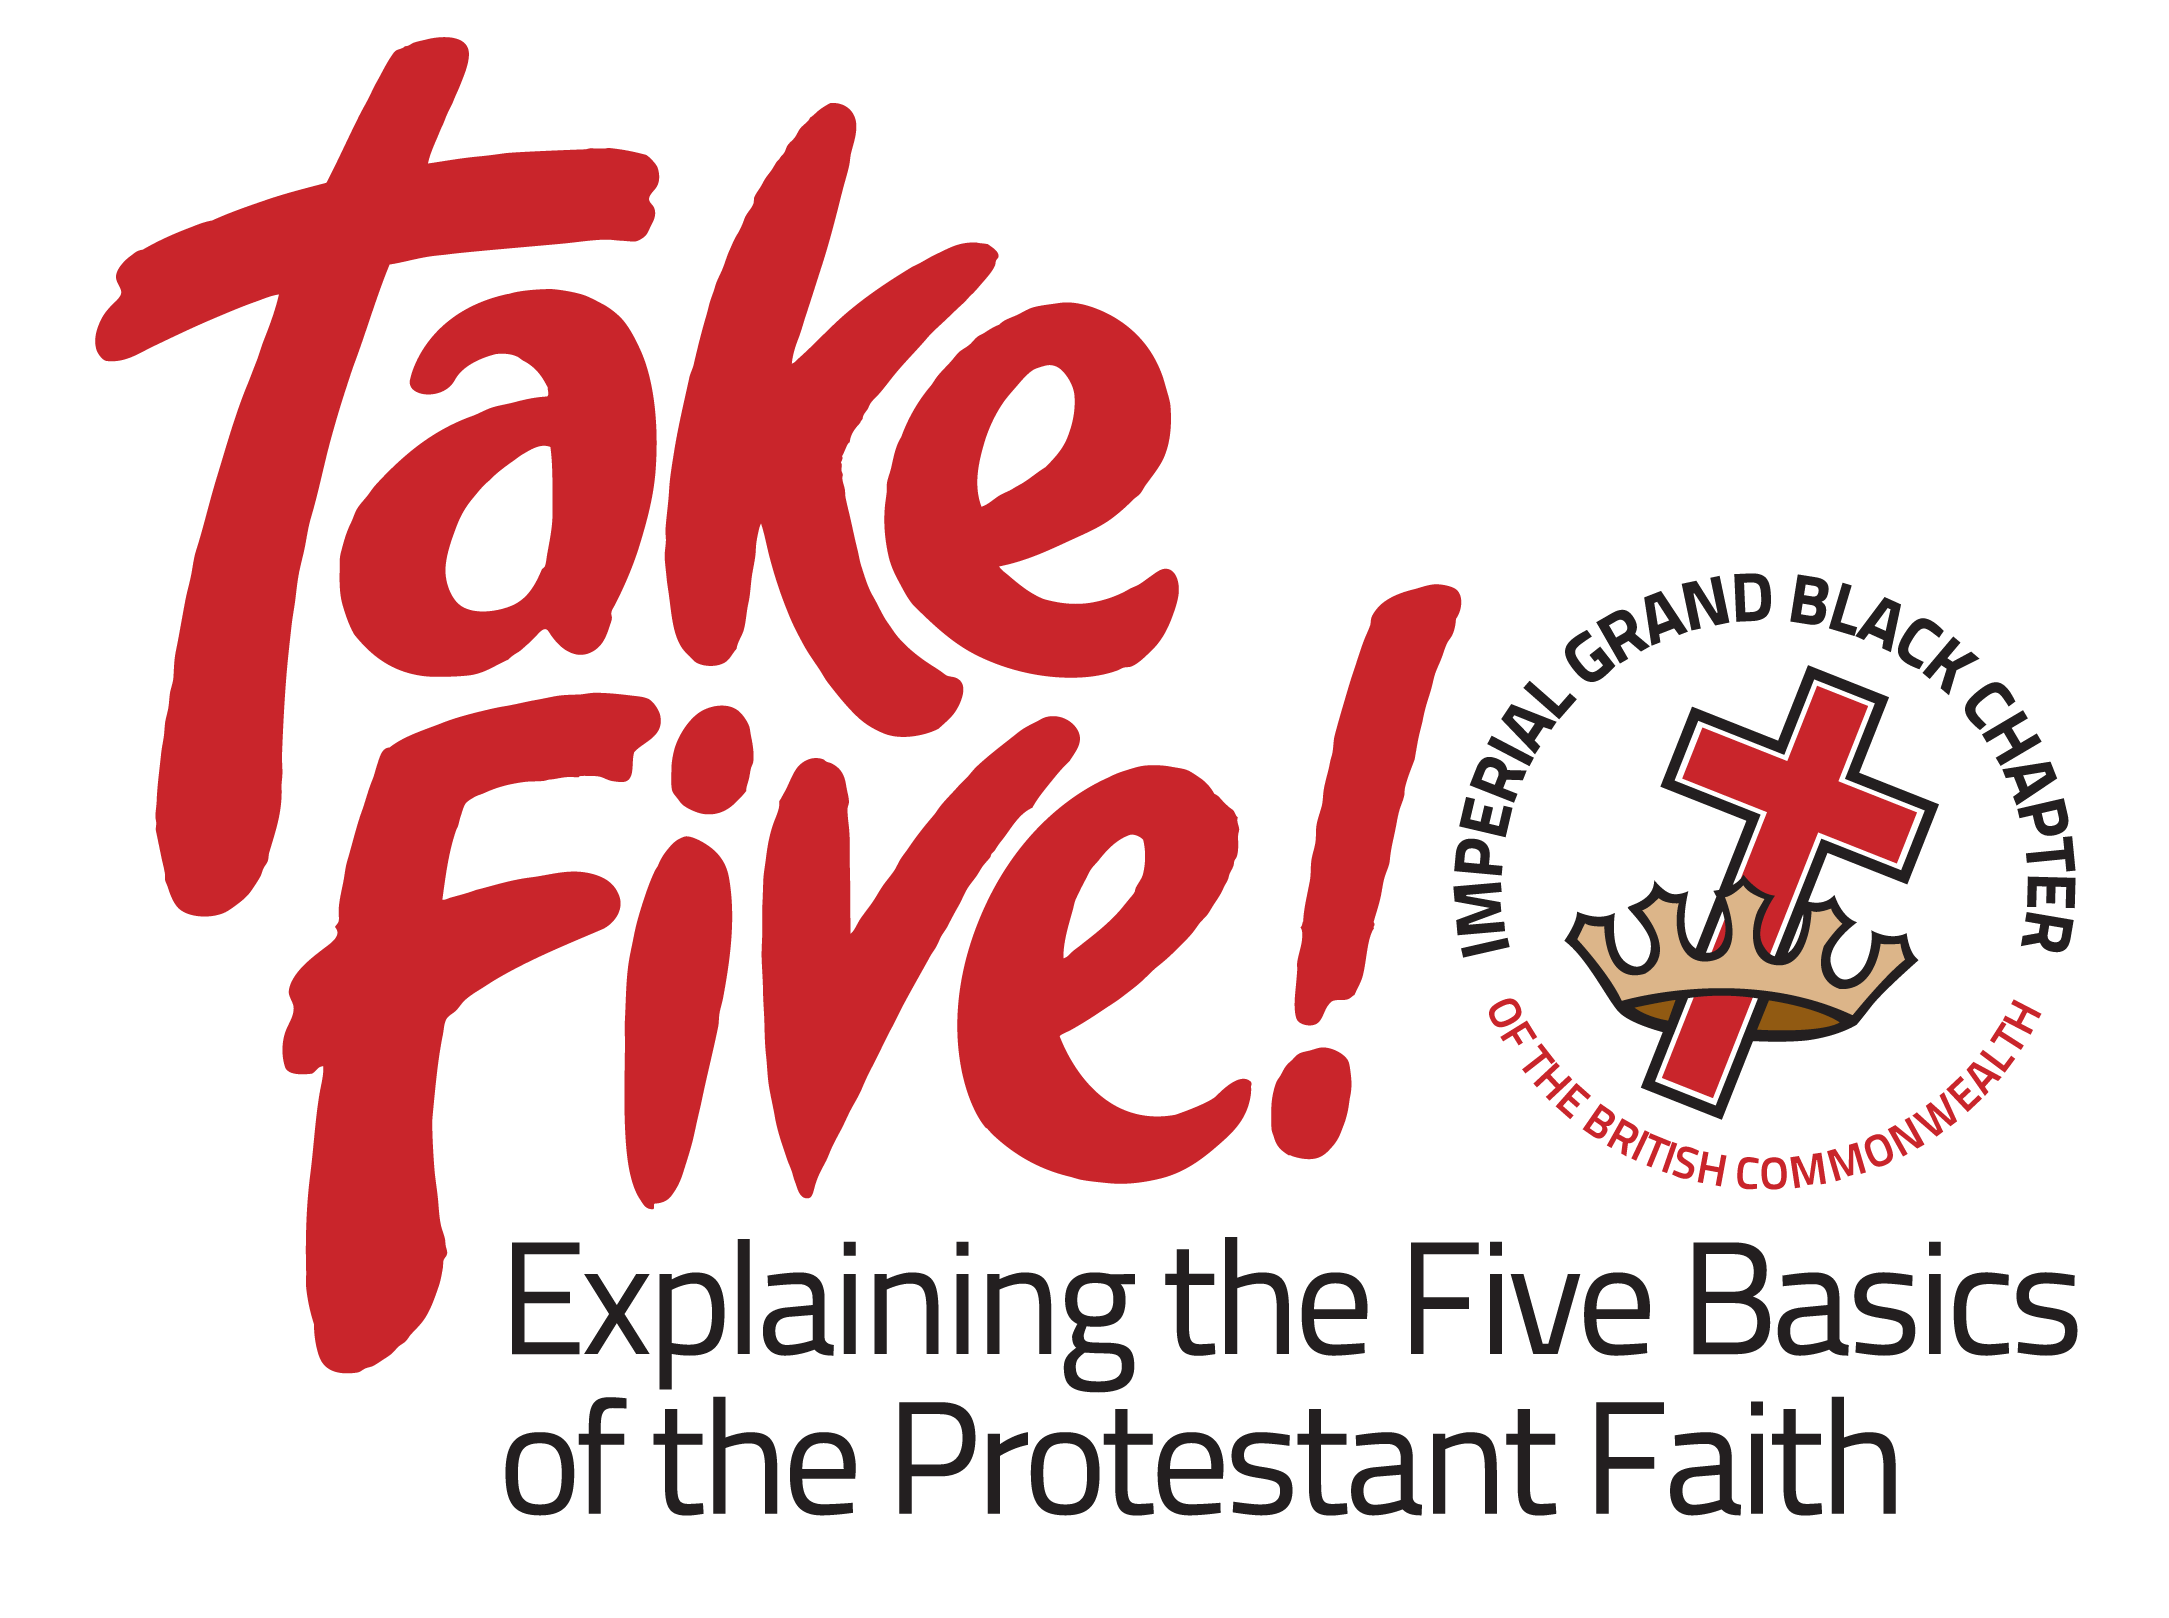 Take Five Logotypes v 2